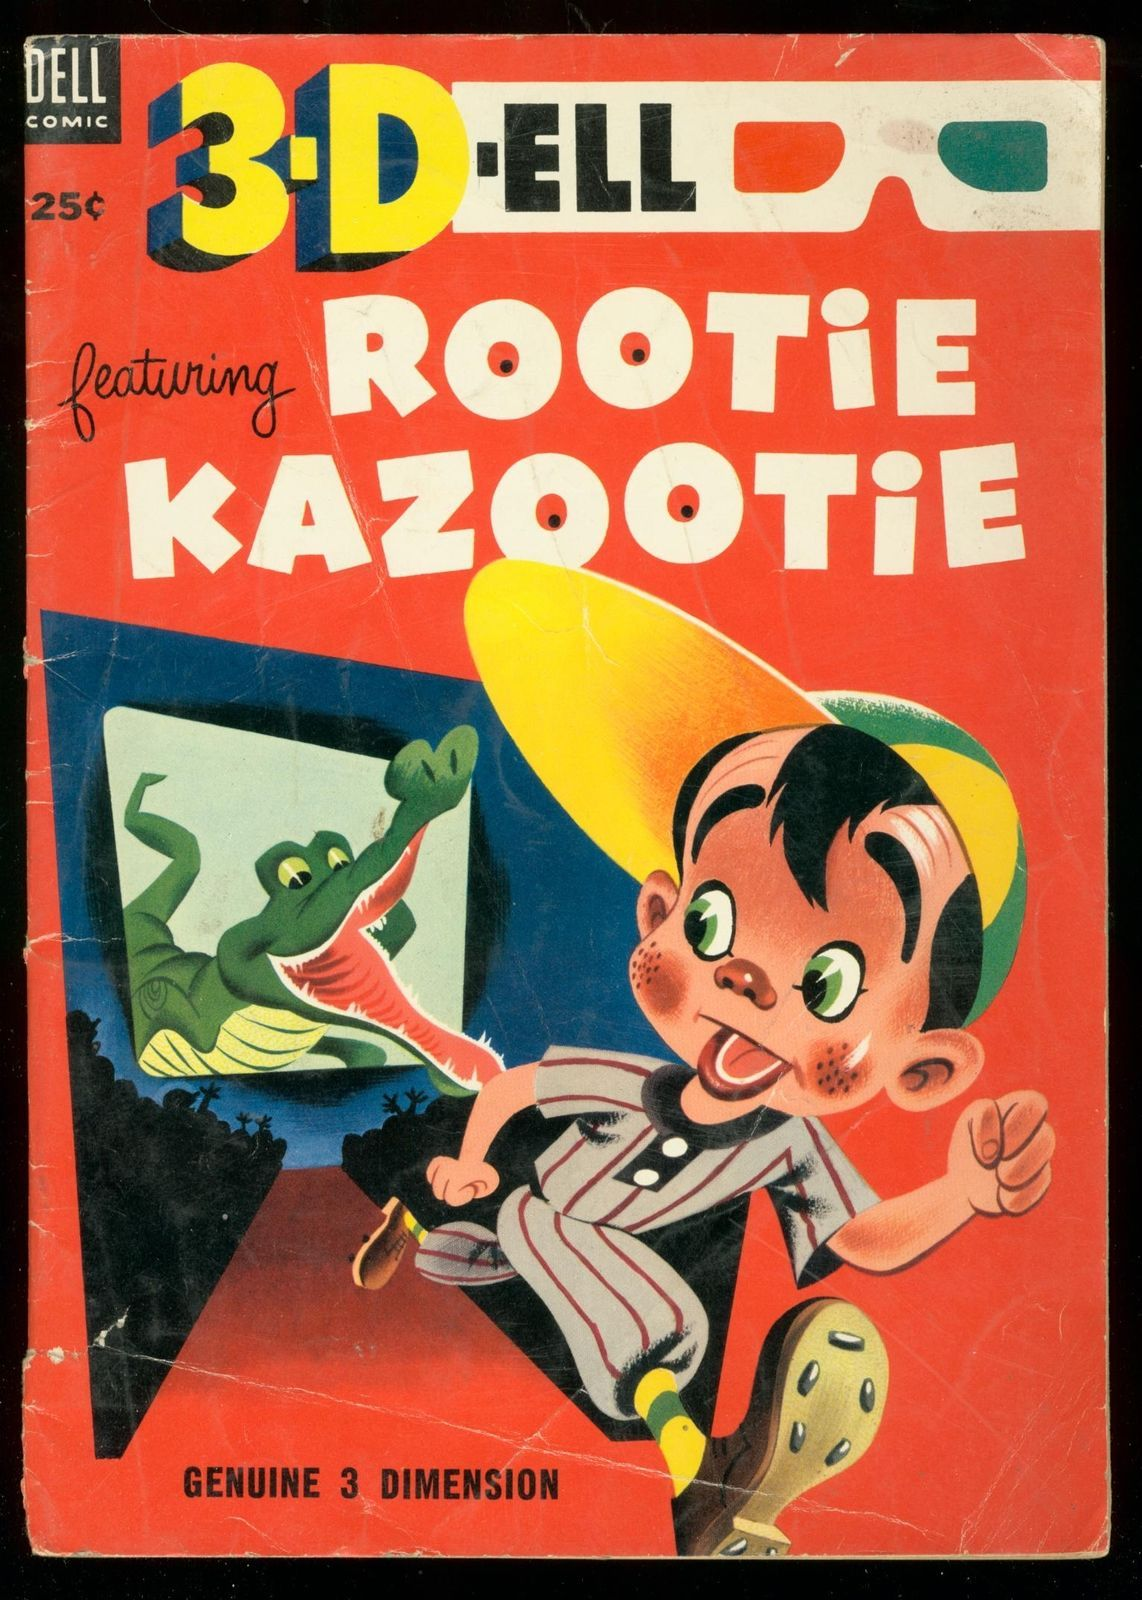 Primary image for 3-DELL #1 1953- DELL COMICS-ROOTIE KAZOOTIE-GATOR COVER VG